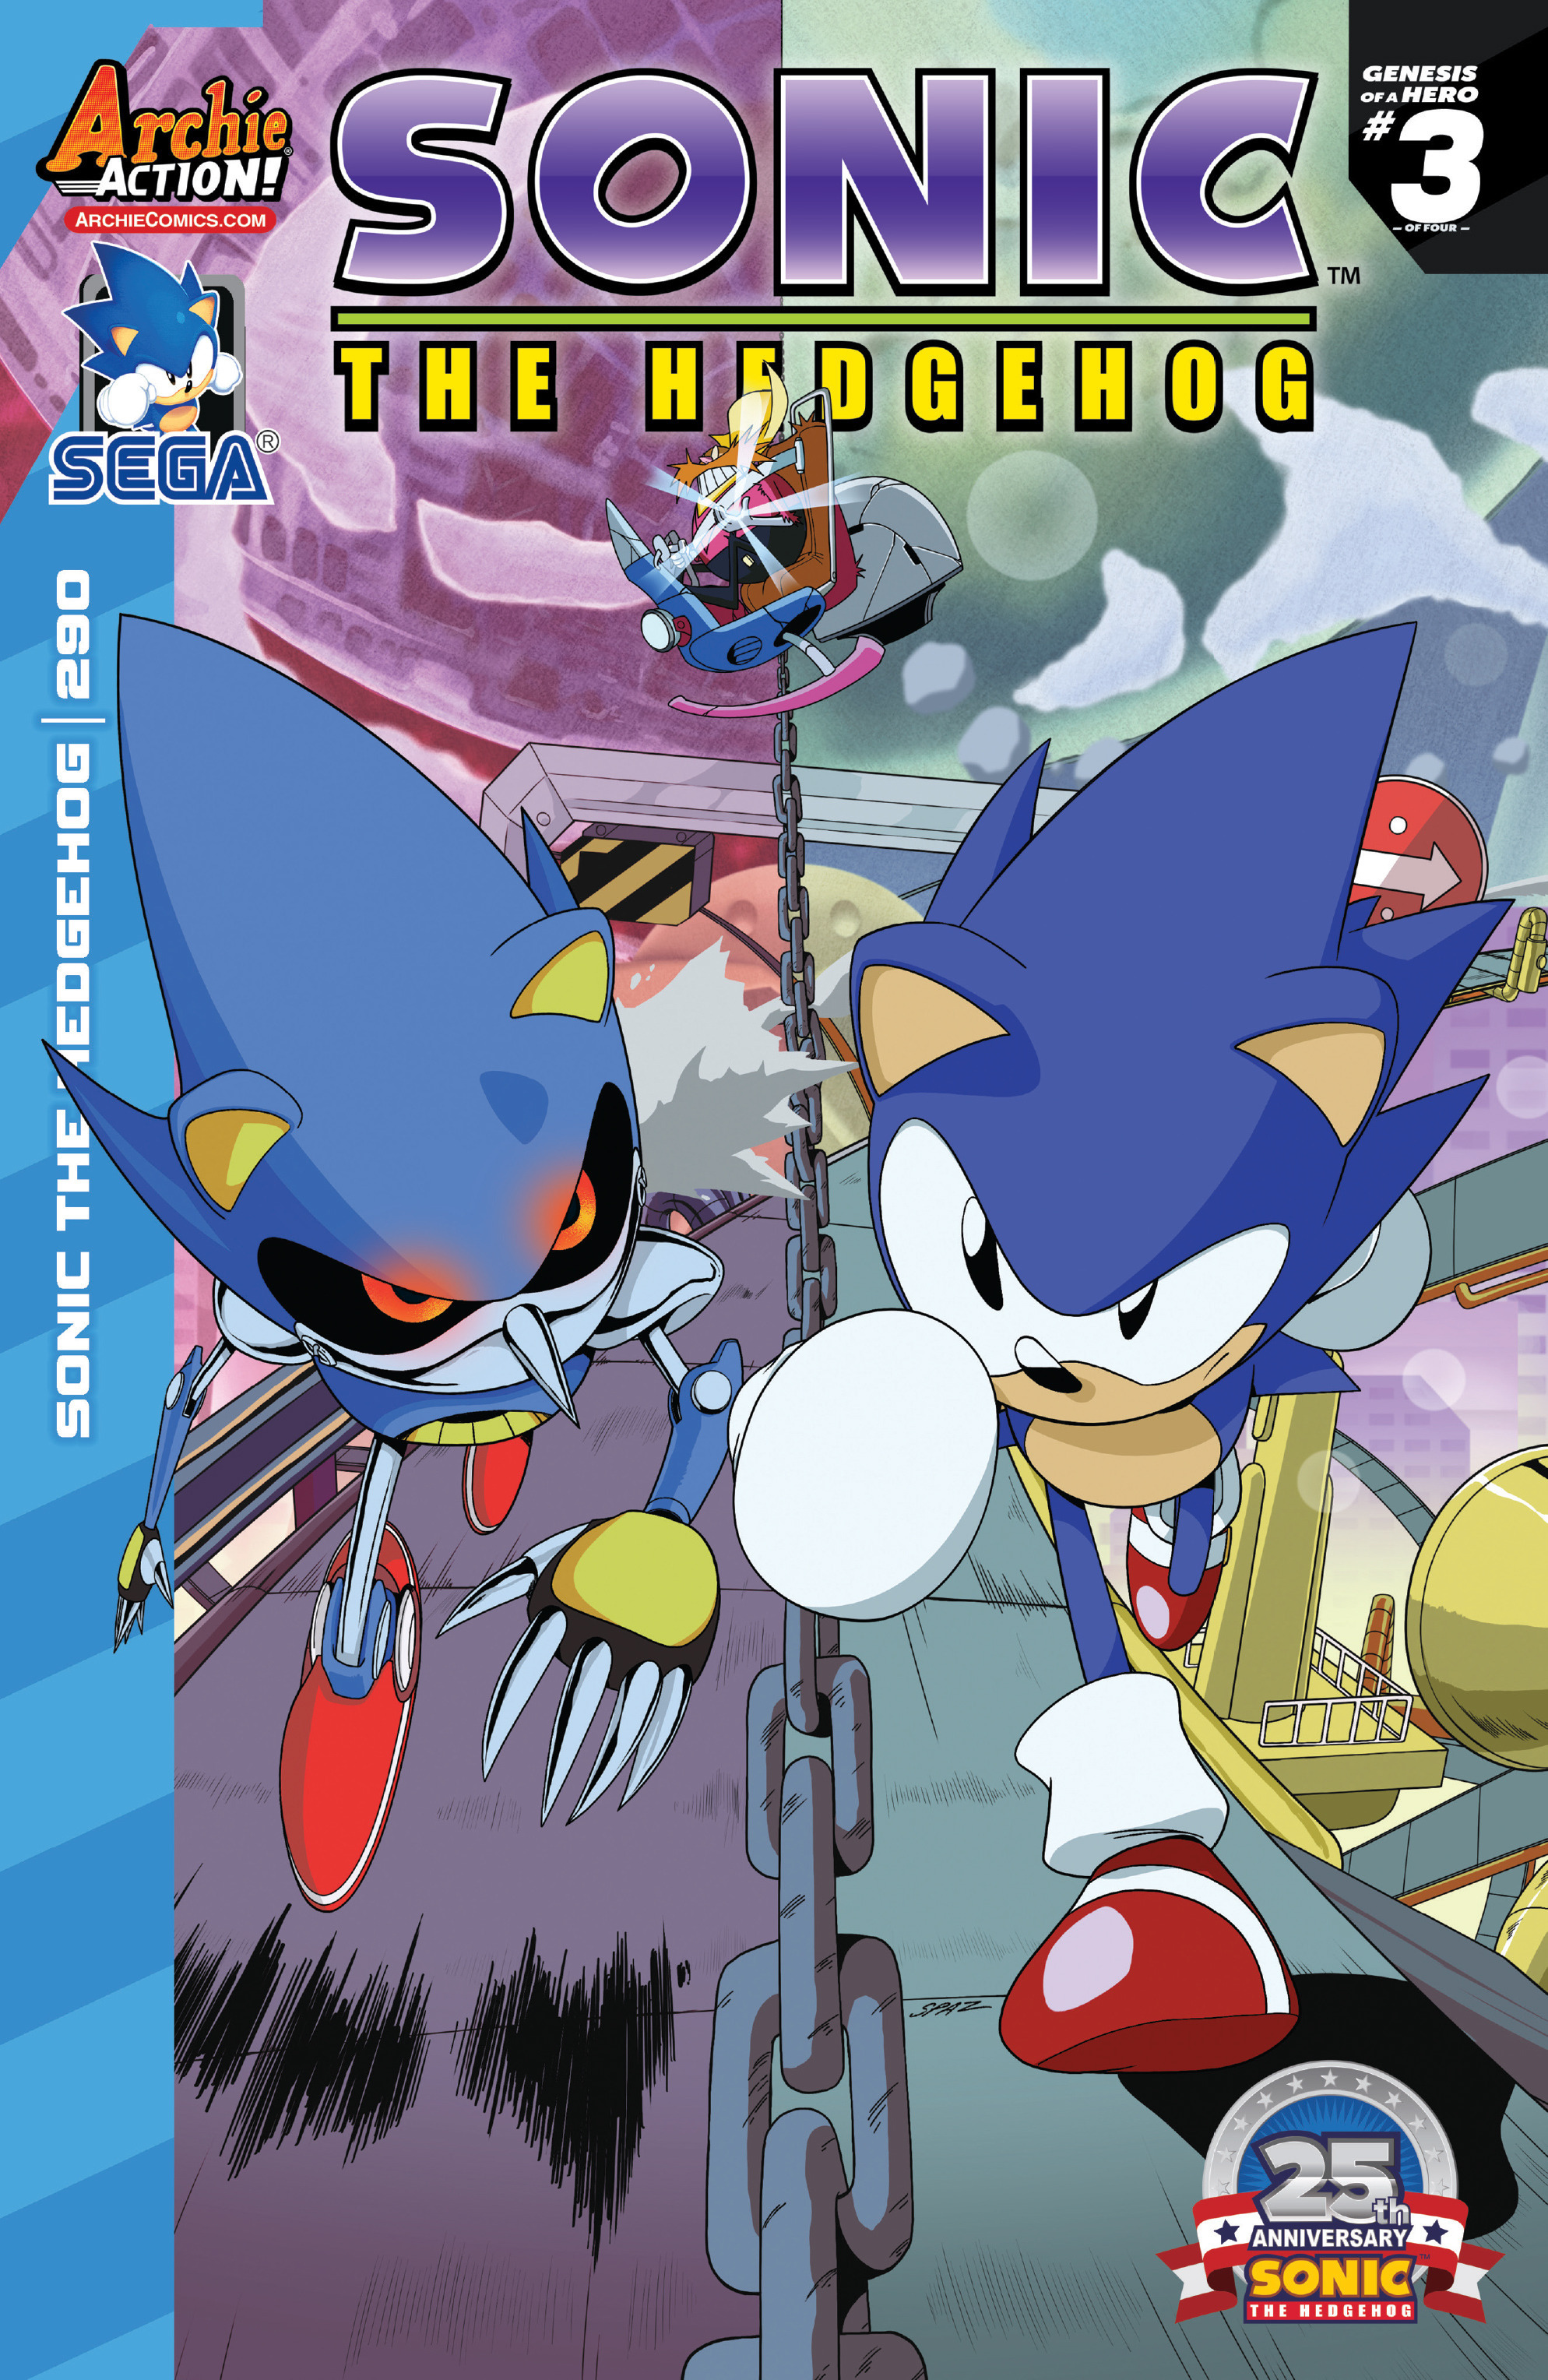 http://vignette3.wikia.nocookie.net/sonic/images/d/d1/StH_290_Cover.jpeg/revision/latest?cb=20160920171916